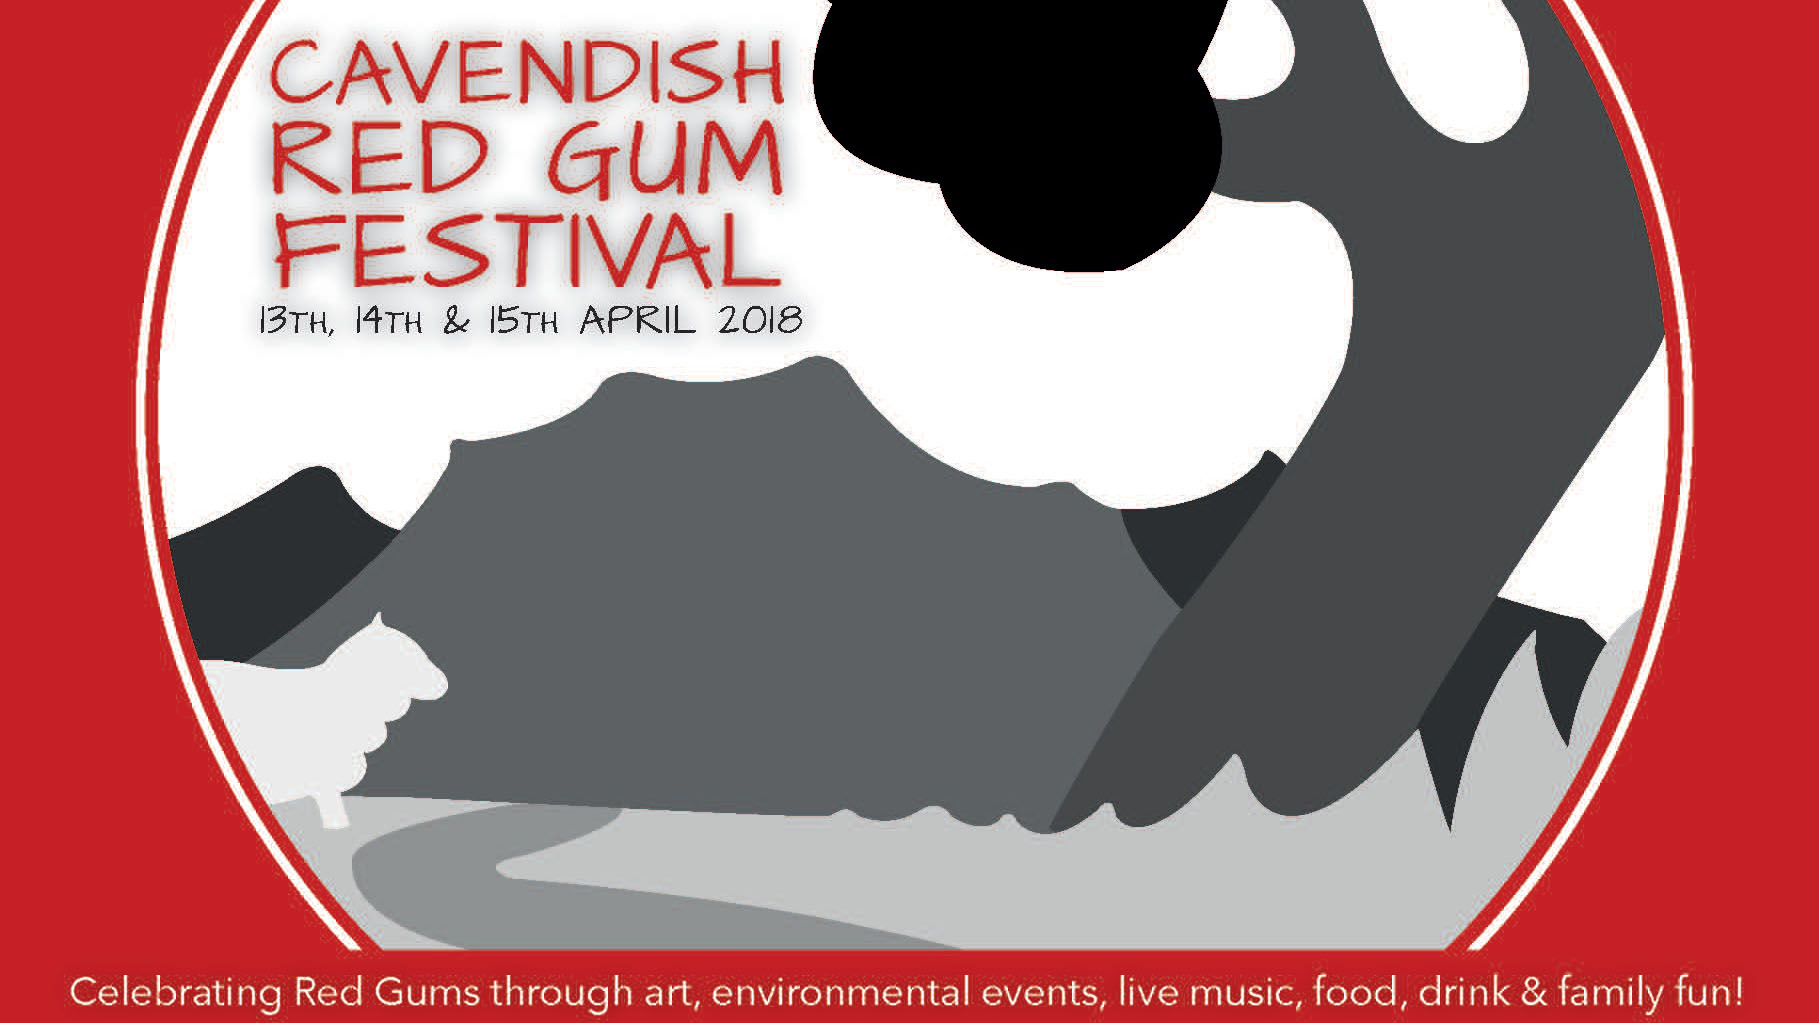 Event: Cavendish Red Gum Festival